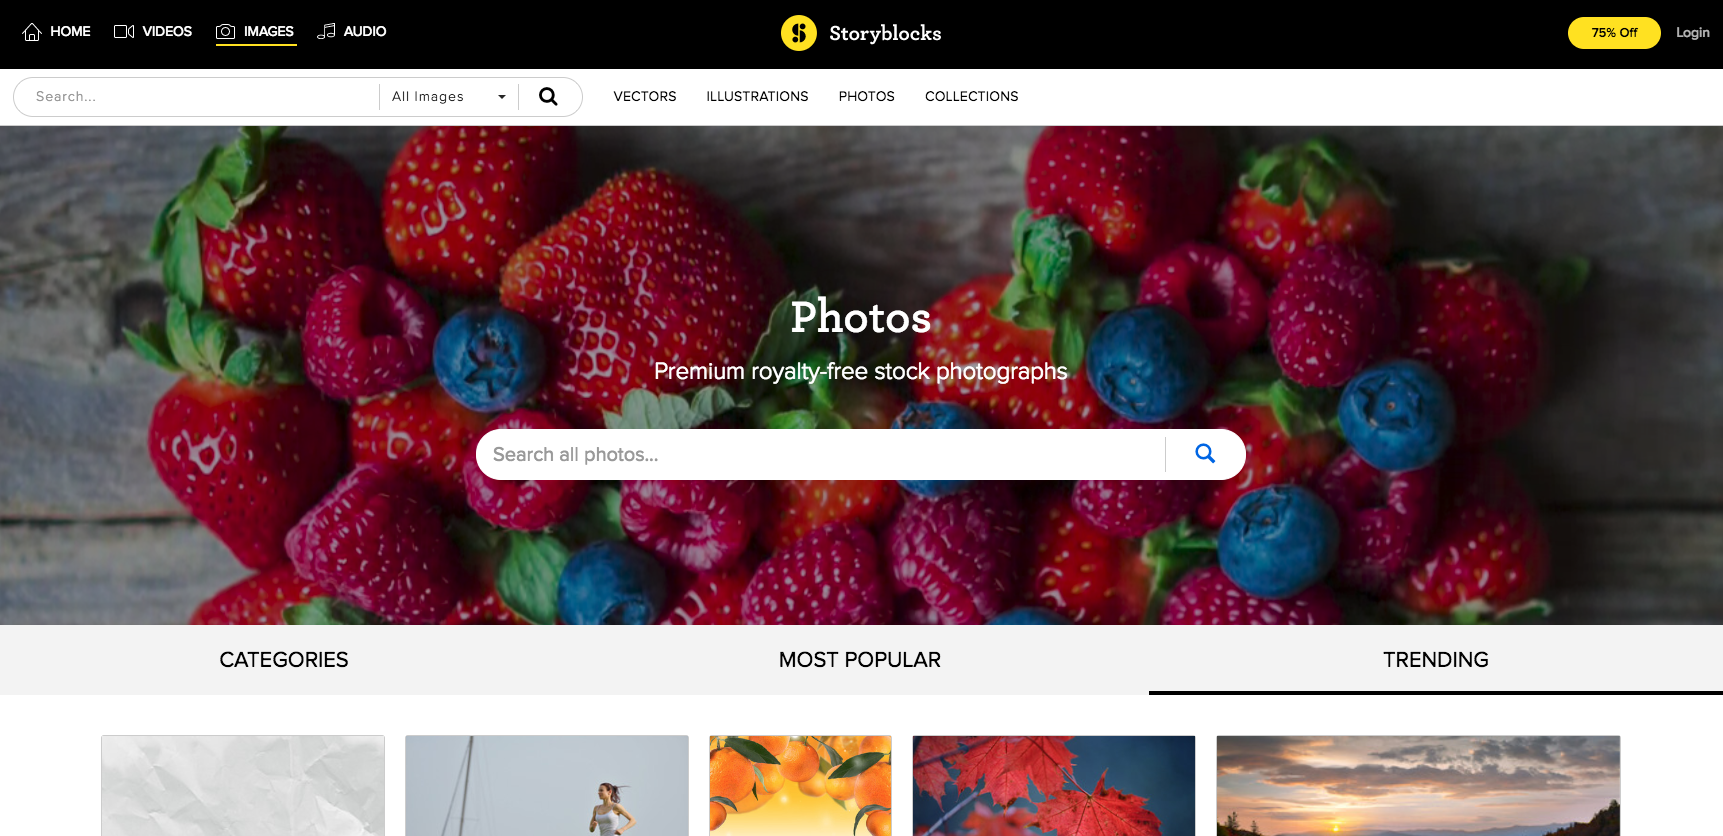 Videoblocks launches its stock photo service and changes its name to Storyblocks